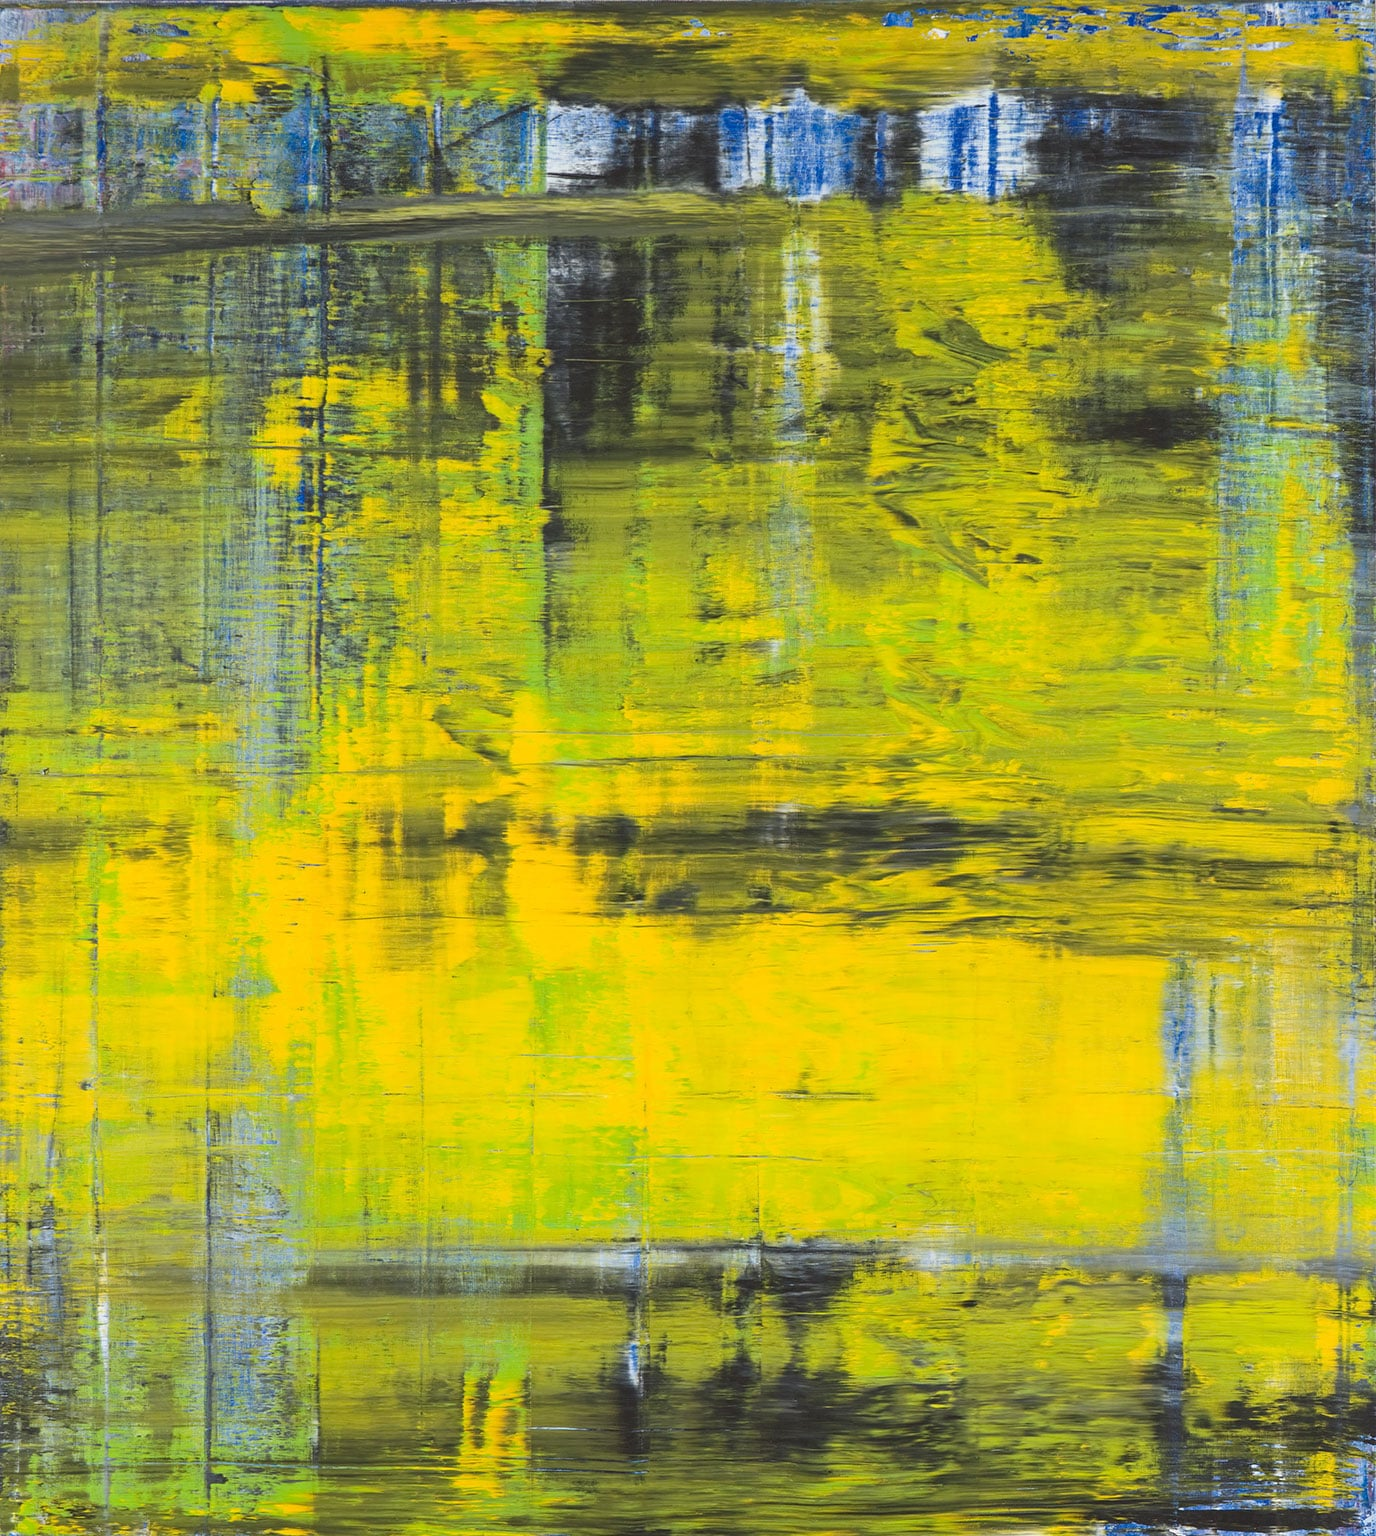 2. Gerhard Richter Artist Rooms, 6 Sept – 6 Dec 2014 - Dick Institute, Ayrshire. Free to all